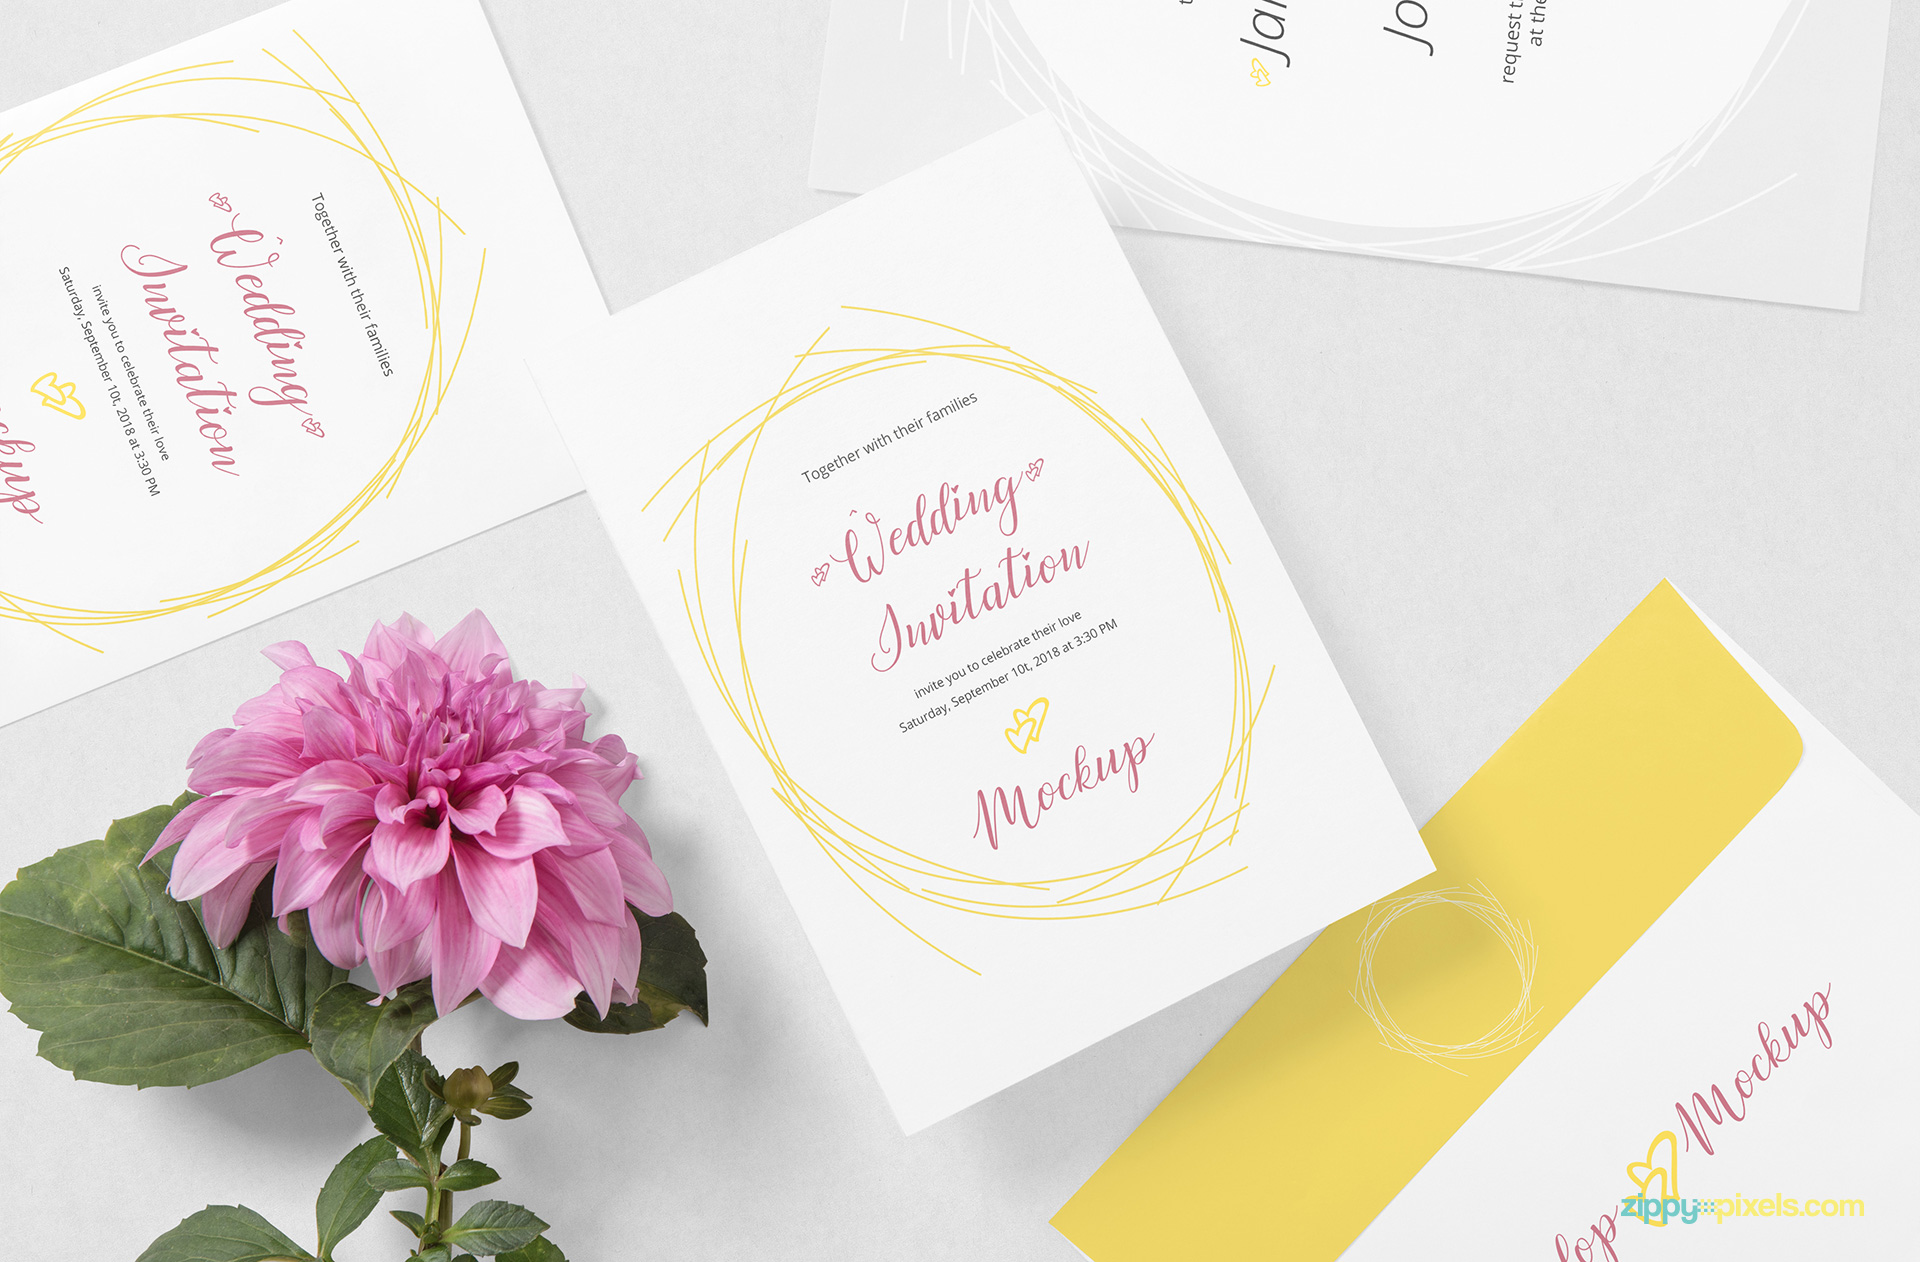 Free wedding card mockup PSD.